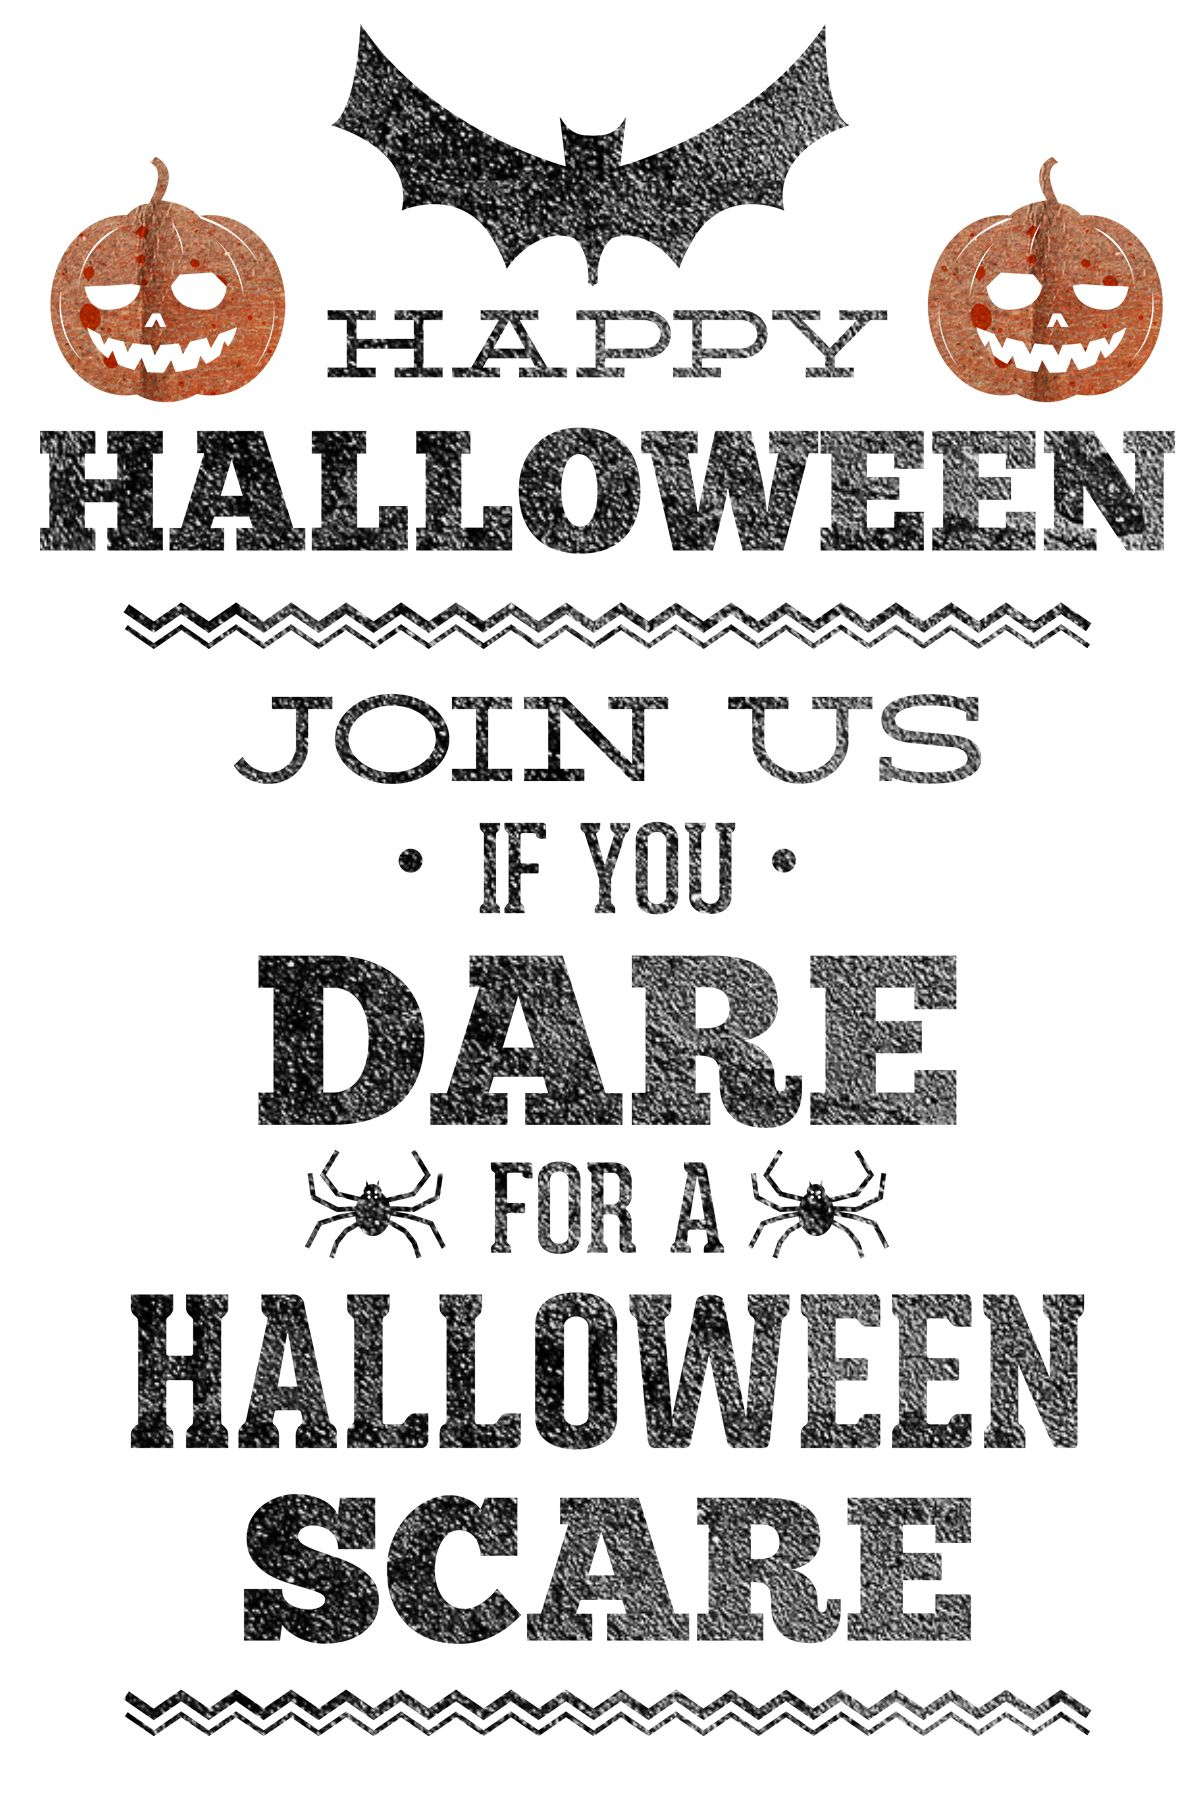 Free Printable Halloween Party Invitation | Halloween Printables 2 - Free Printable Halloween Party Invitations